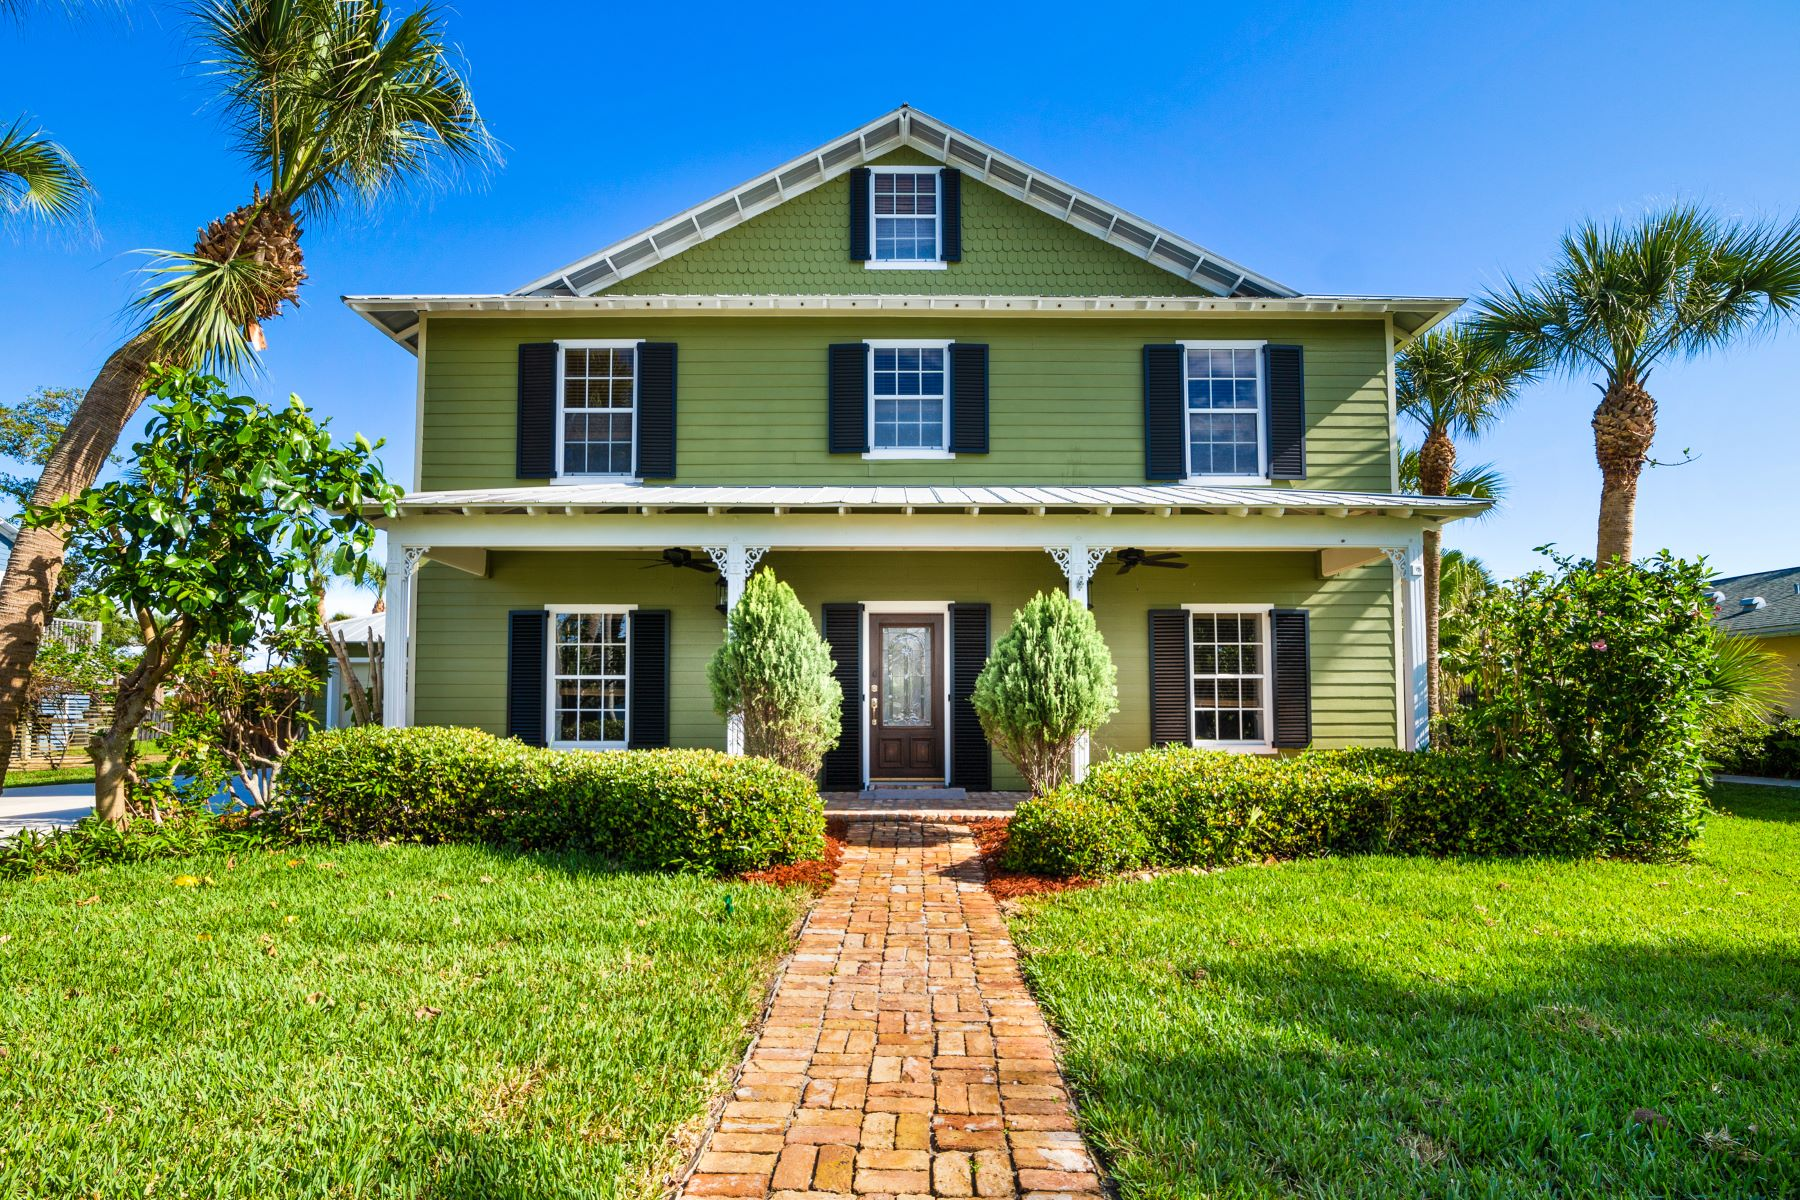 Single Family Home for Sale at Wilcox Melbourne Beach 320 2nd Avenue Melbourne Beach, Florida 32951 United States